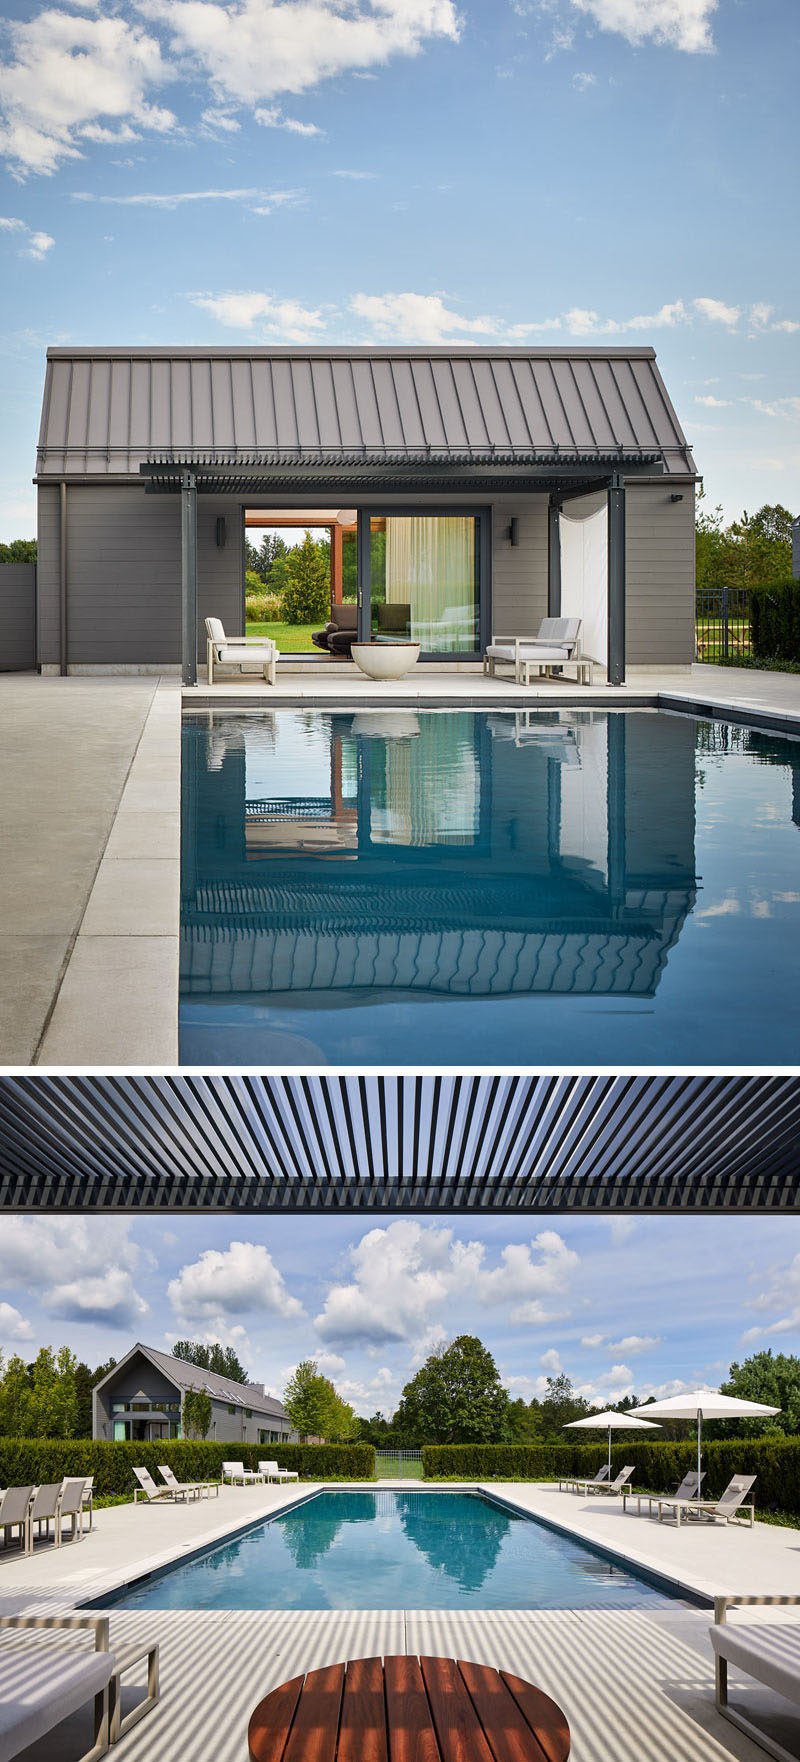 In this modern landscaped yard, there's a pool, a hot tub and a sheds that contain a sauna, pool equipment and mechanical functions. If needed in the future, the shed can be transformed into a one-bedroom guest cottage. #ModernSwimmingPool #PoolHouse